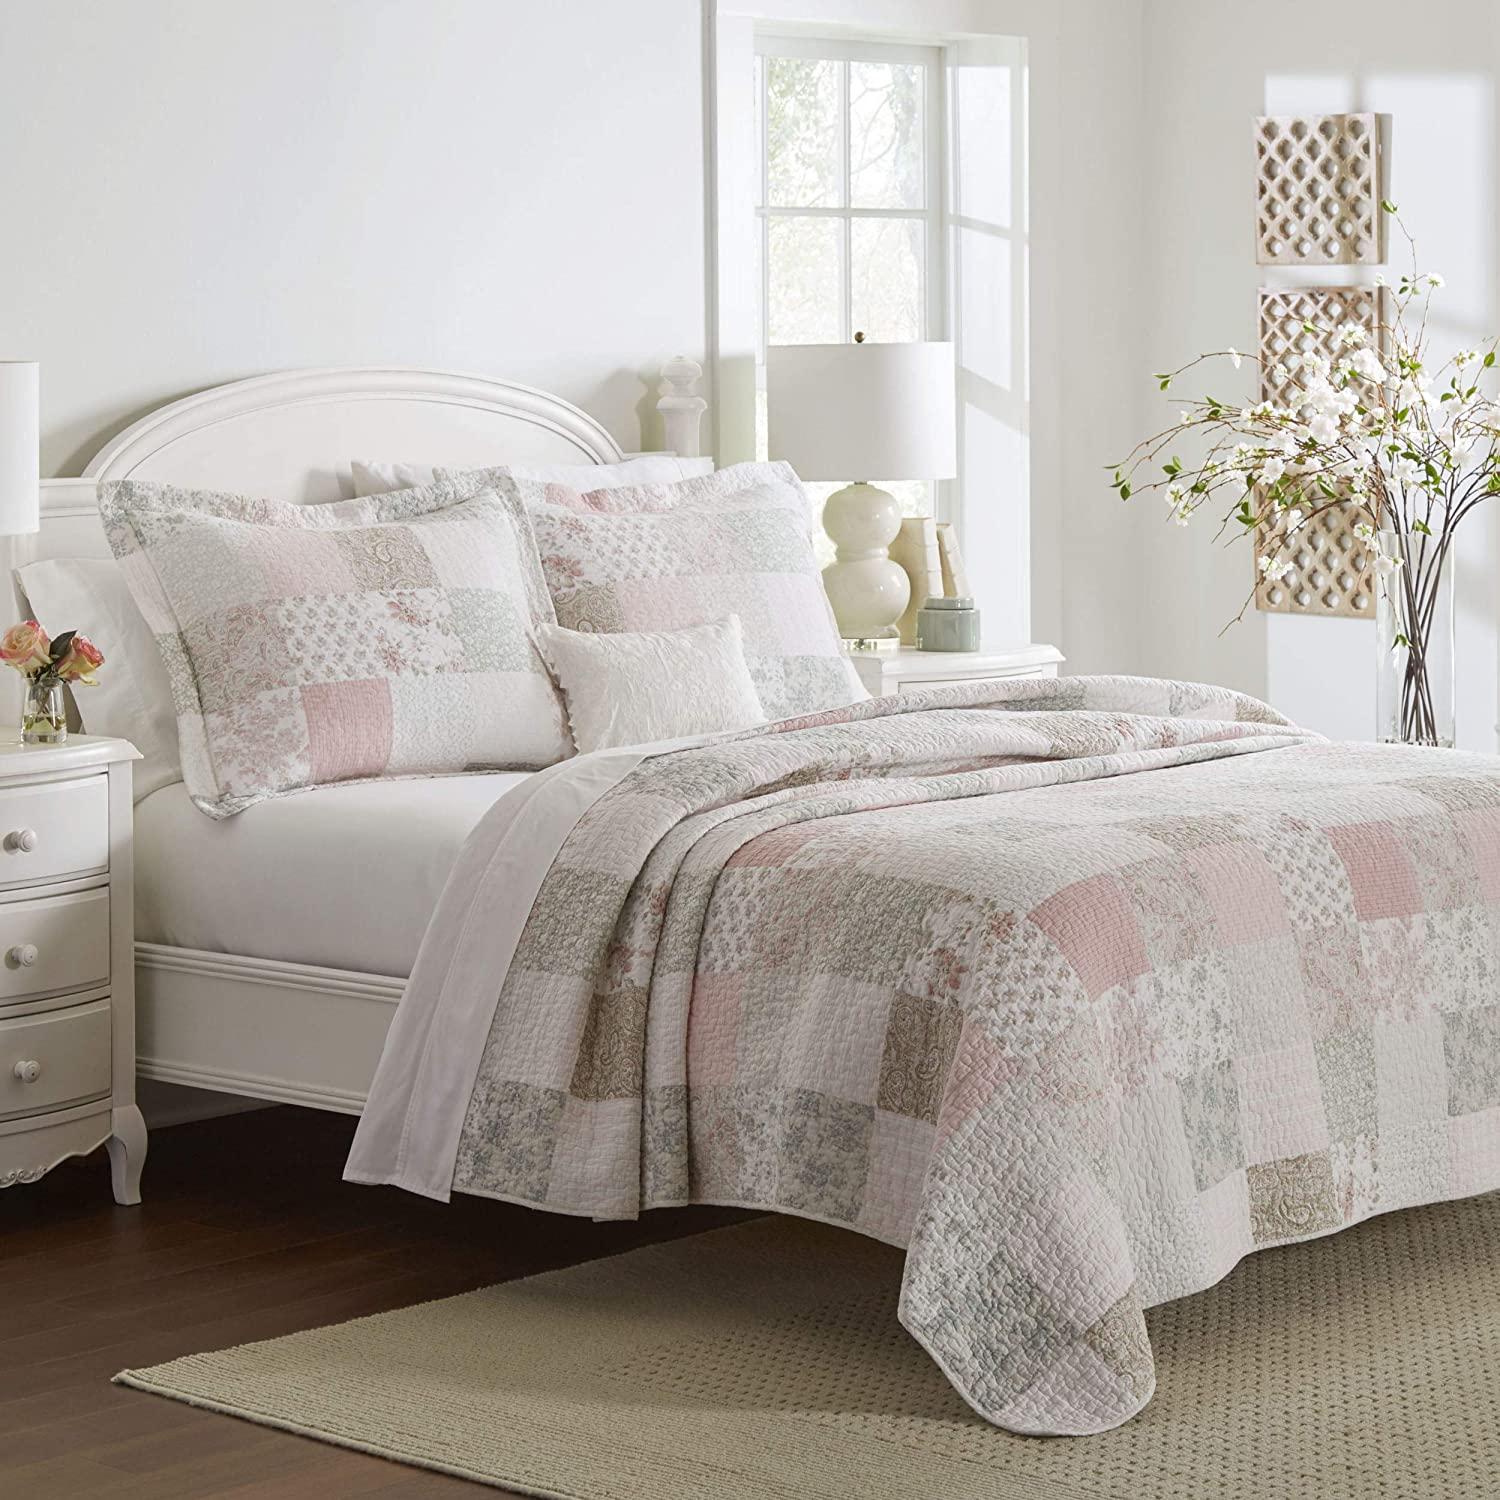 Laura Ashley Home | Celina Patchwork Collection | Luxury Premium Ultra Soft Quilt Coverlet, Comfortable 3 Piece Bedding Set, All Season Stylish Bedspread, Full/Queen, Pink/Sage